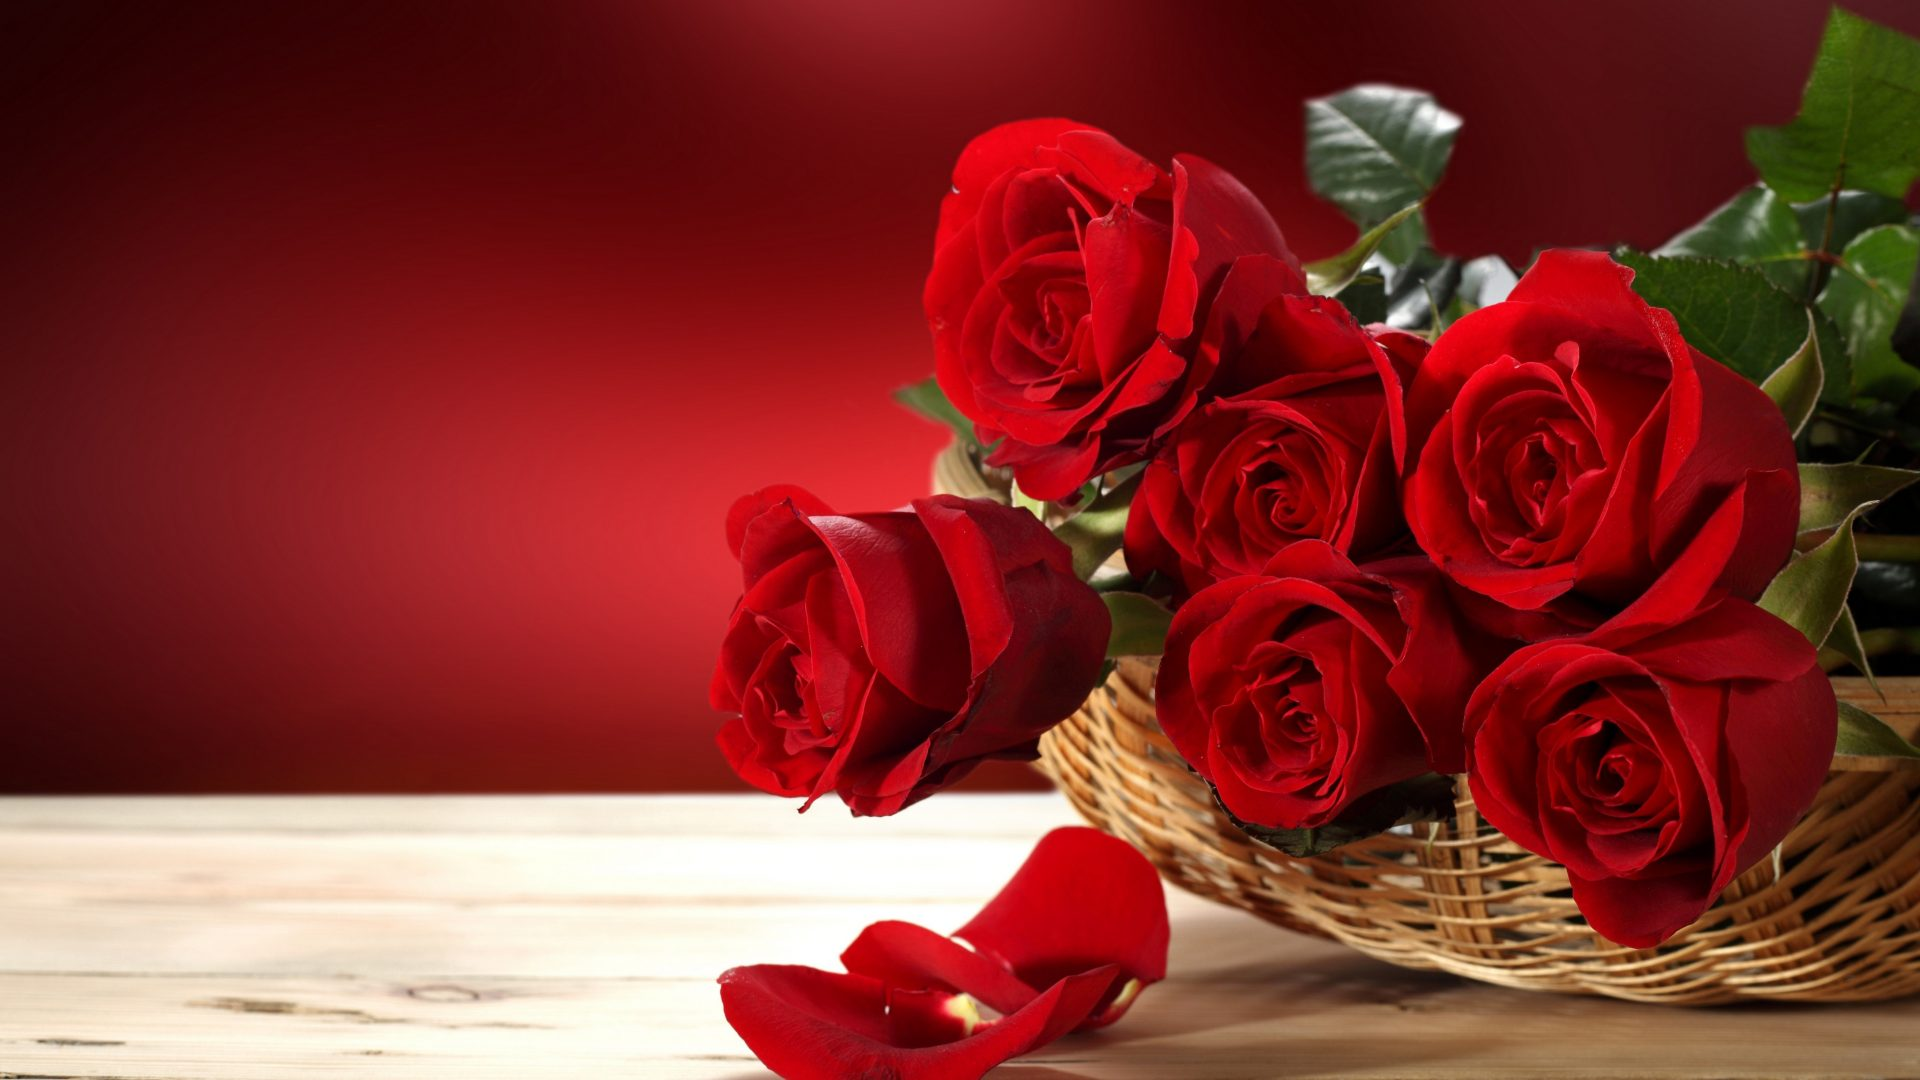 Red flower hd wallpapers - Red rose flower hd images ...